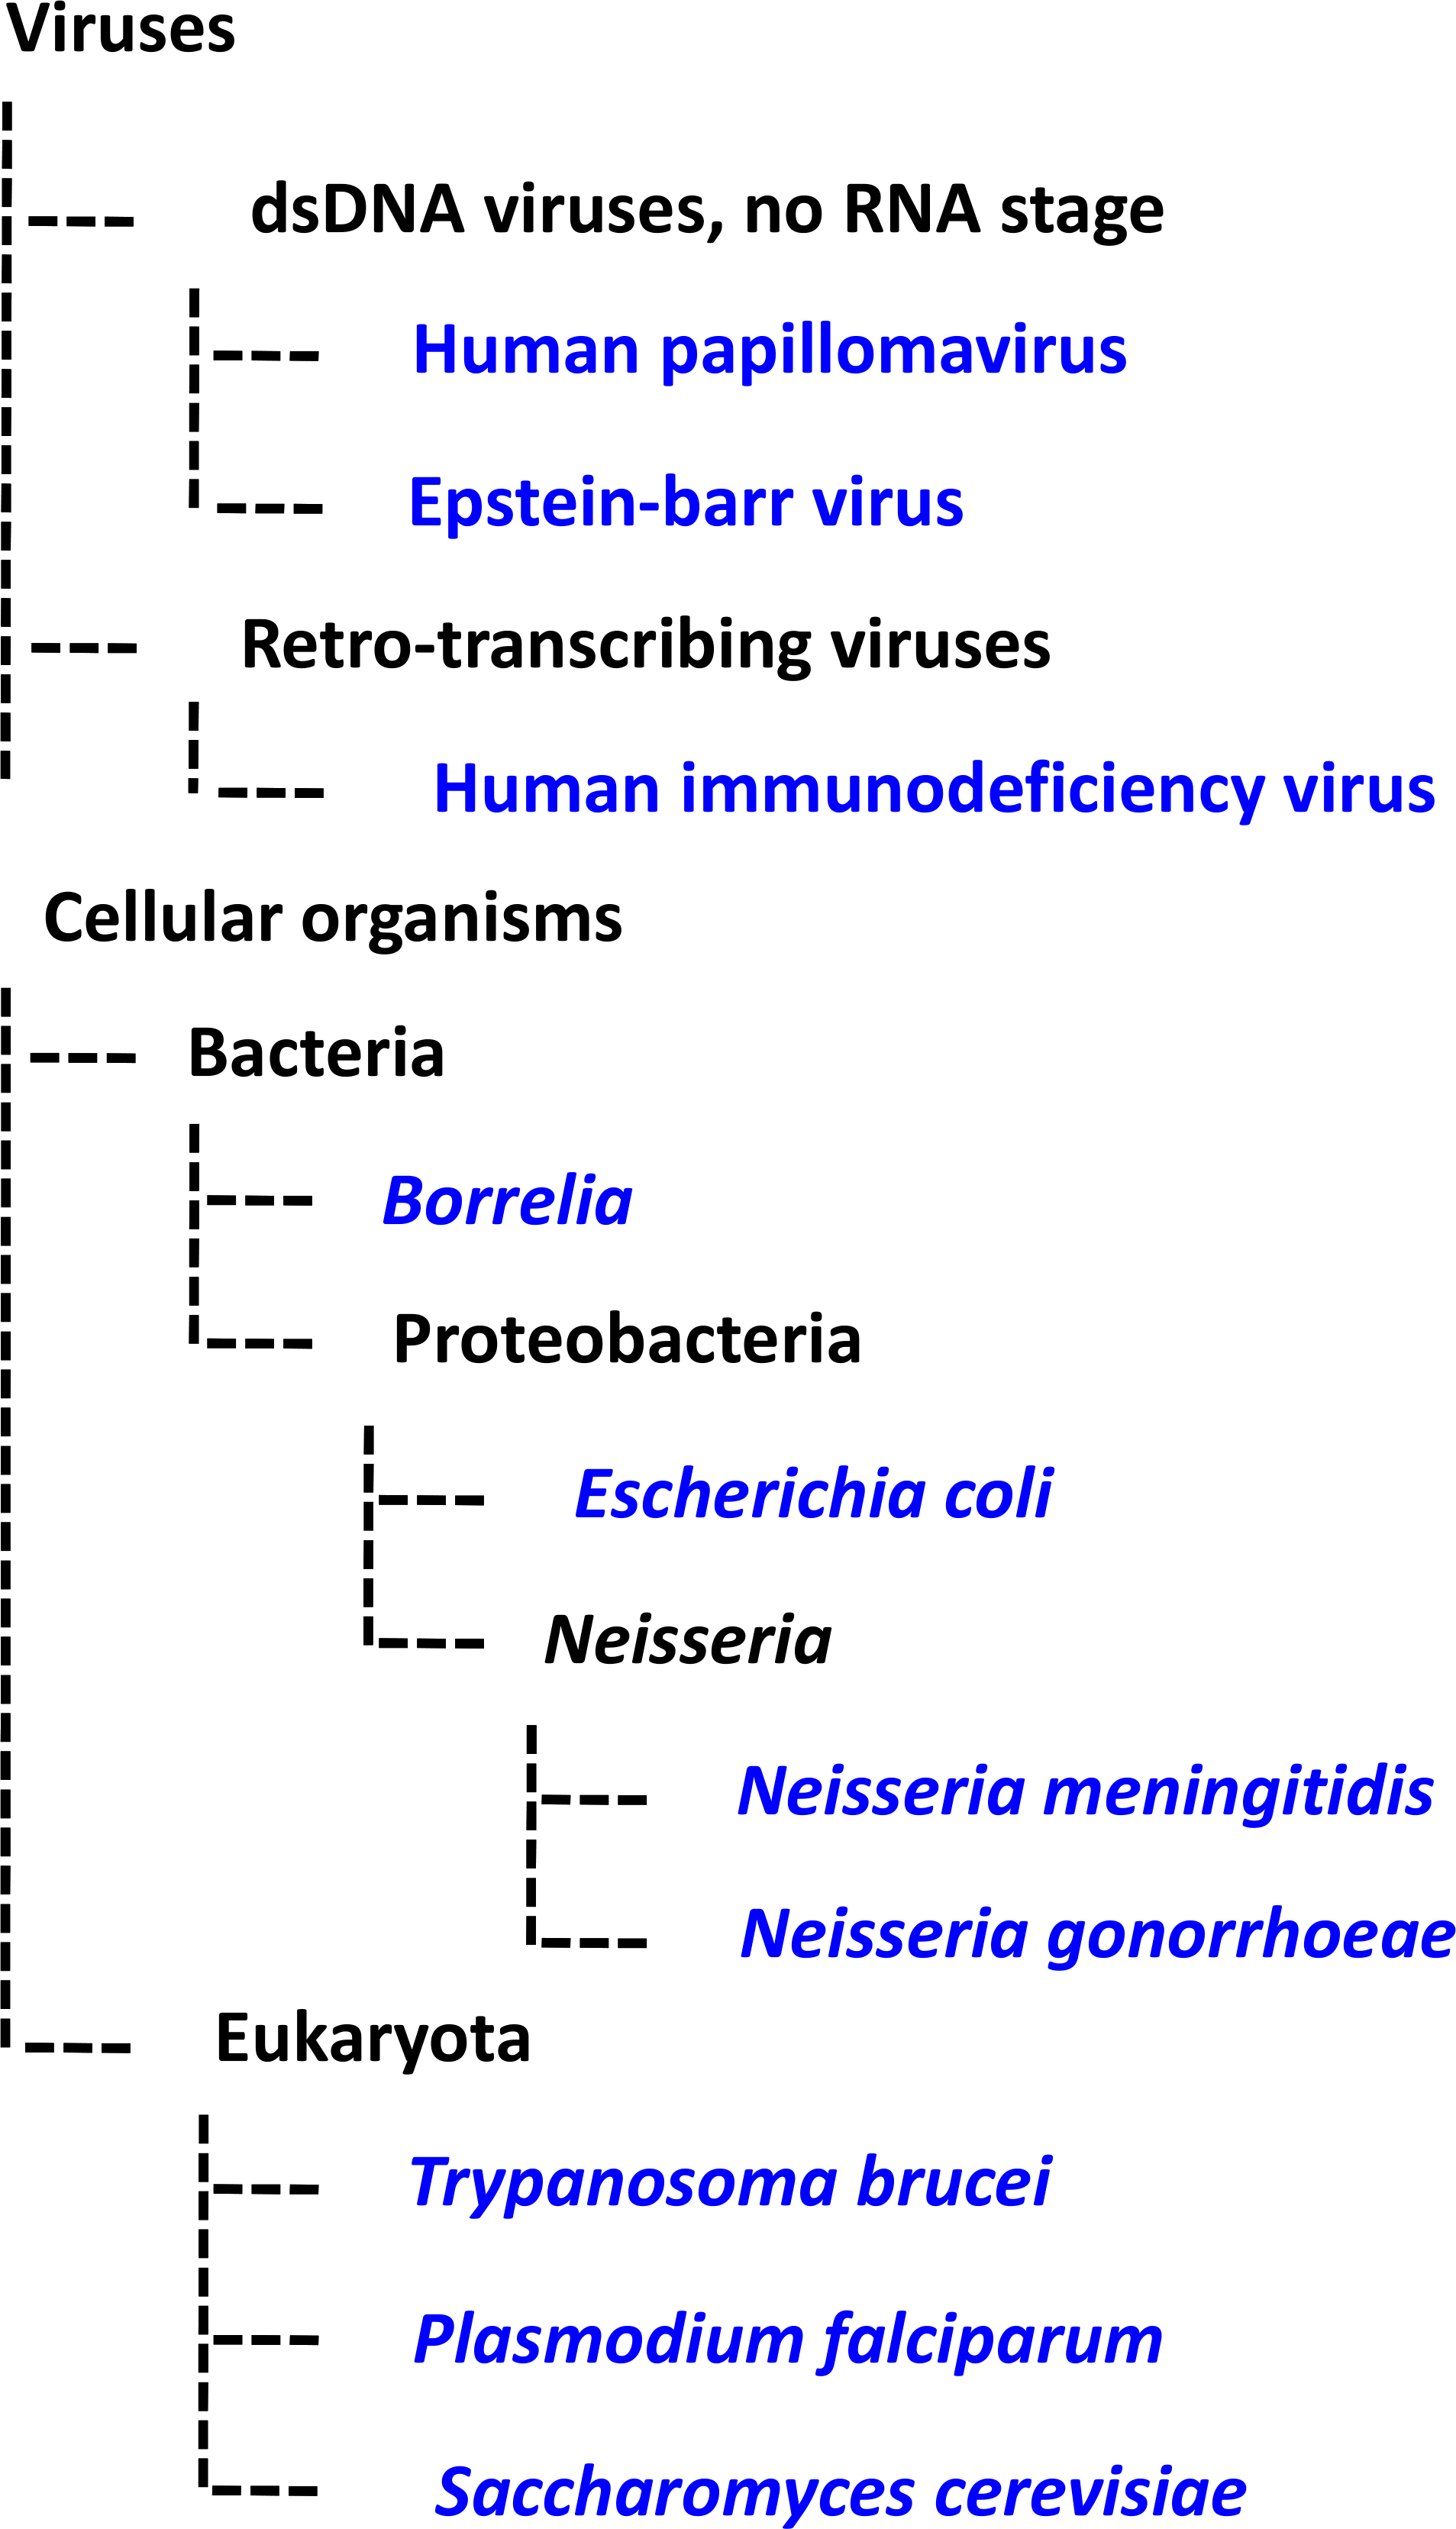 Phylogenetic tree schematic displaying the evolutionary relationships among the pathogens discussed in this review.